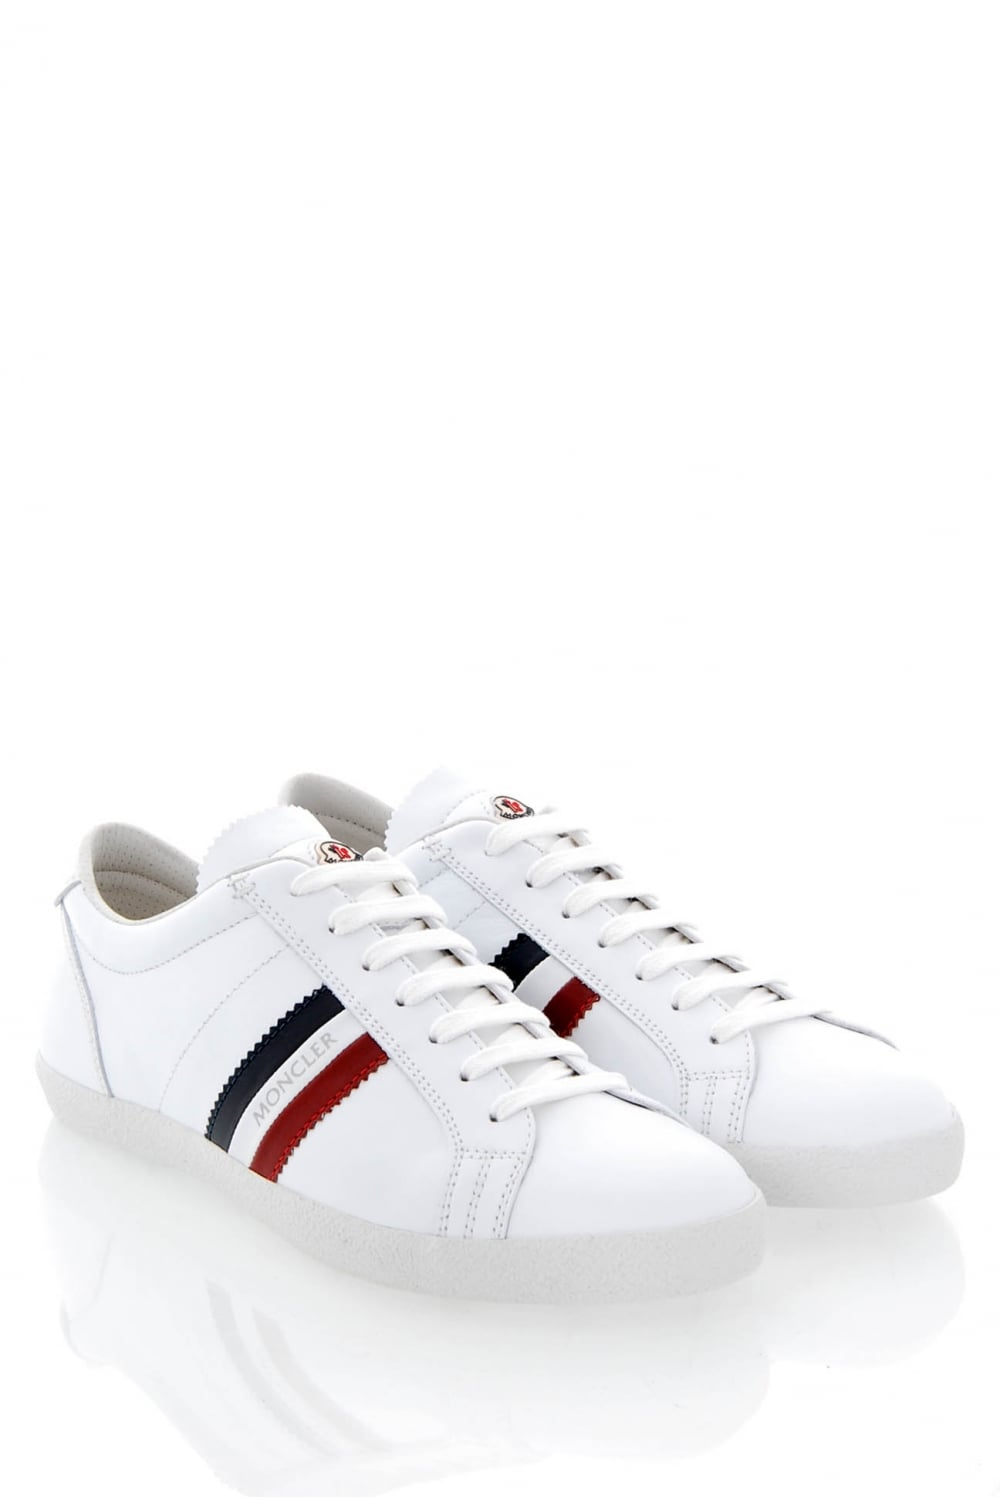 8869f434e MONCLER Moncler Monaco Leather Trainers - Clothing from Circle ...